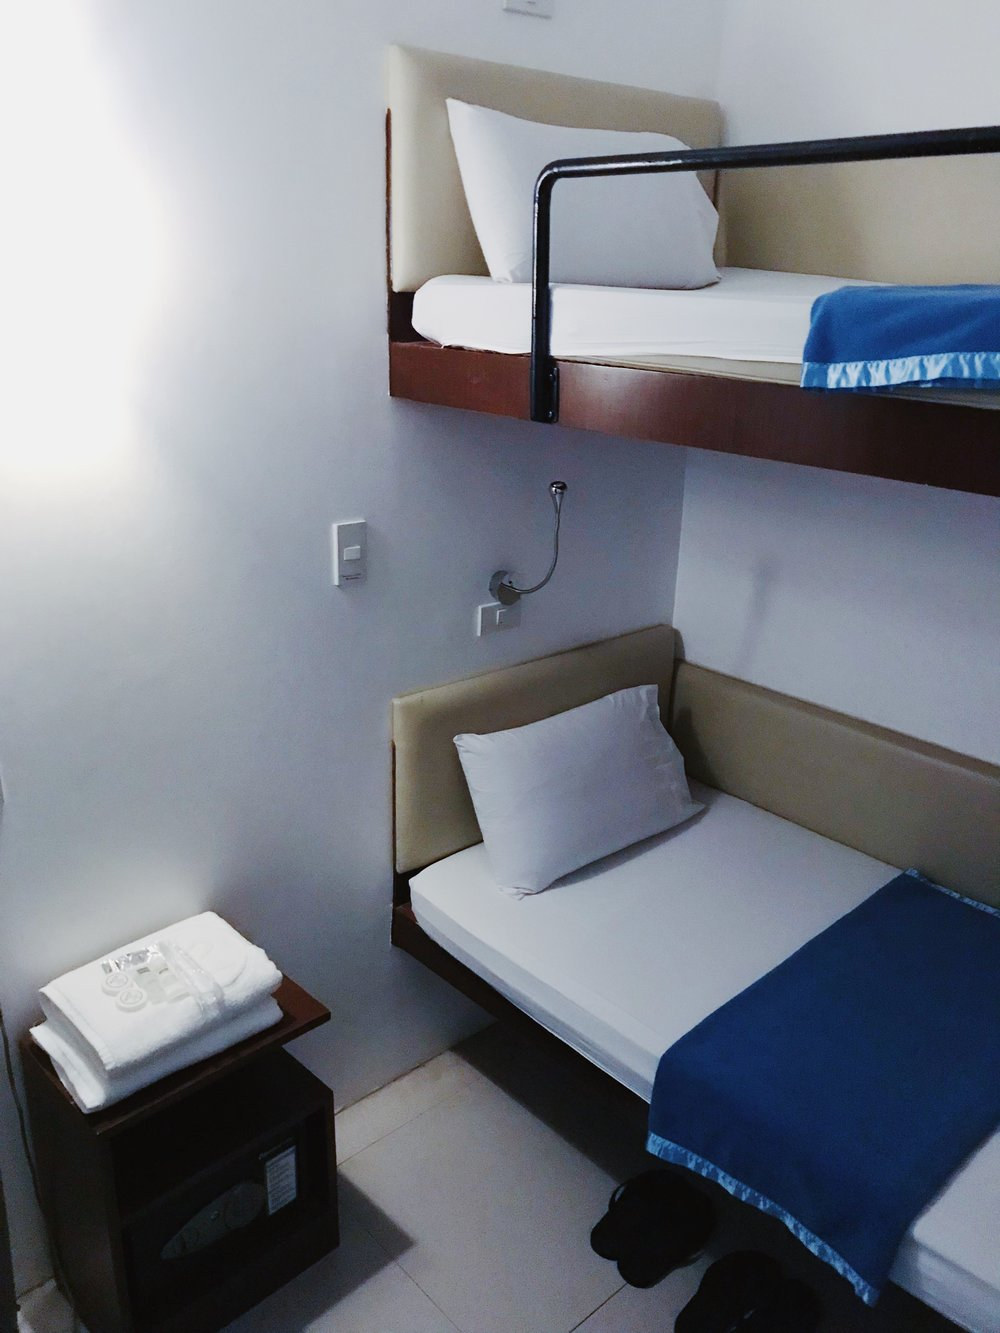 While bunk beds are provided, an add-on bed can be requested for groups of three.